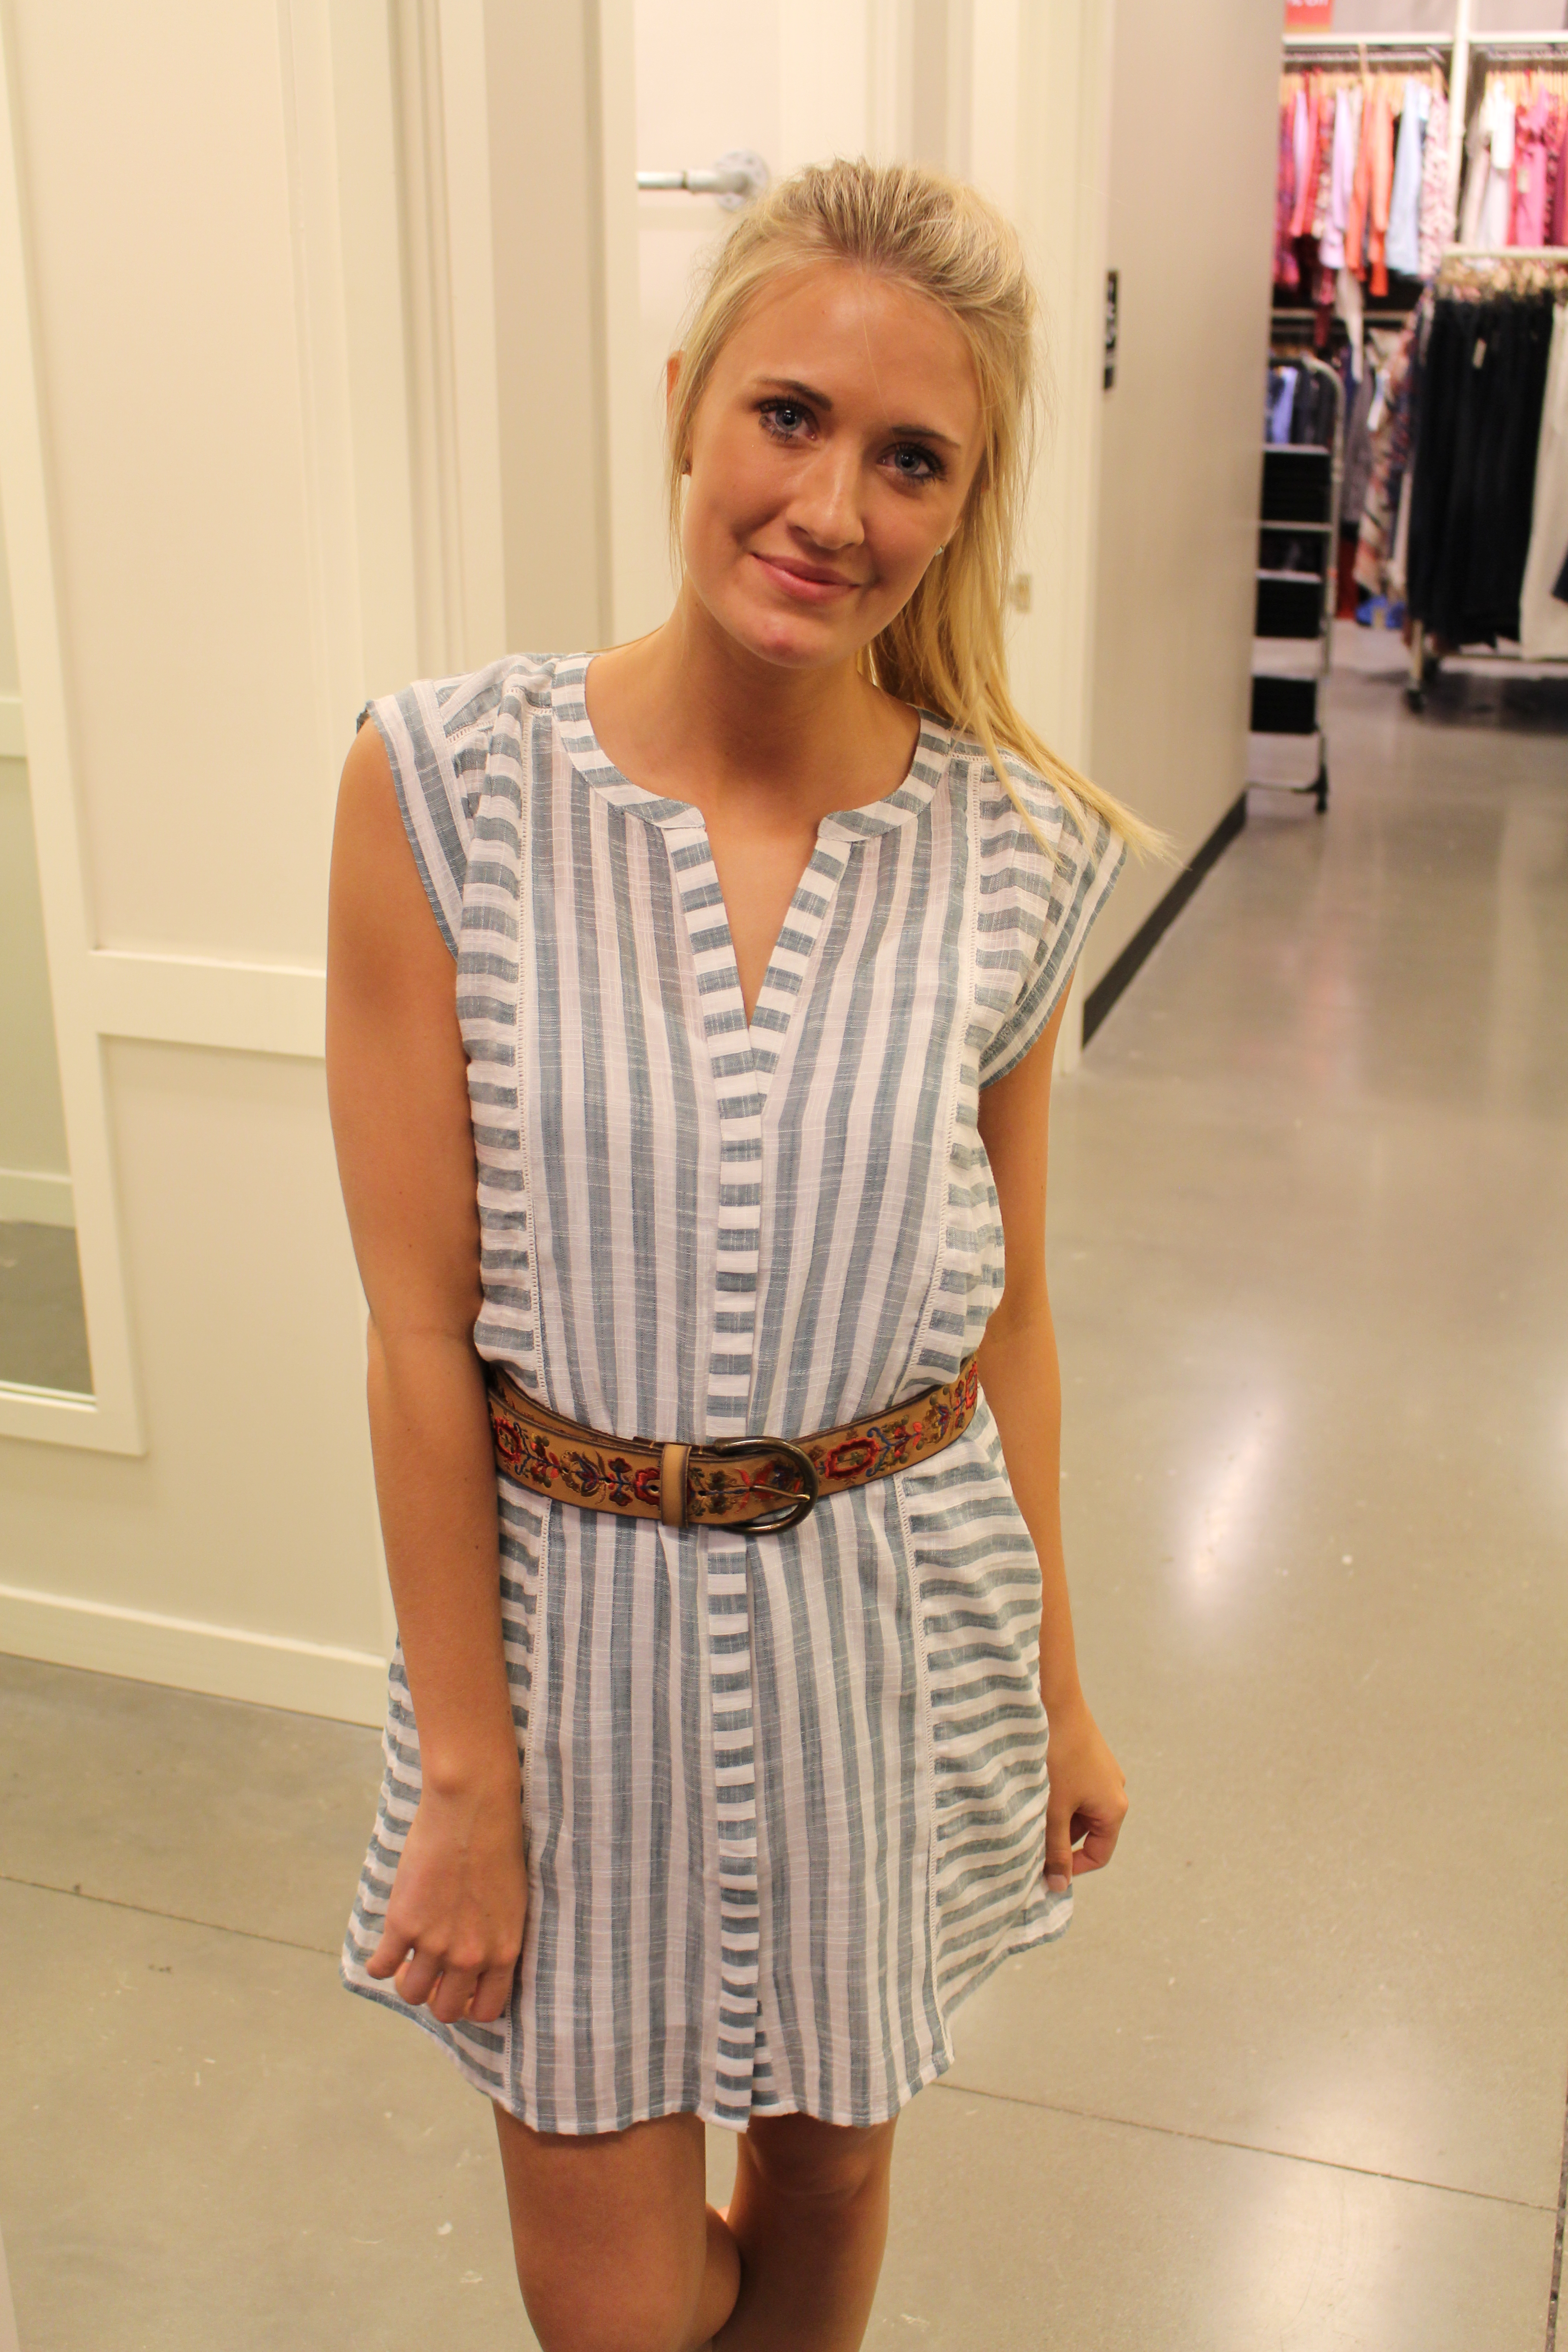 Tanger Outlets striped dress